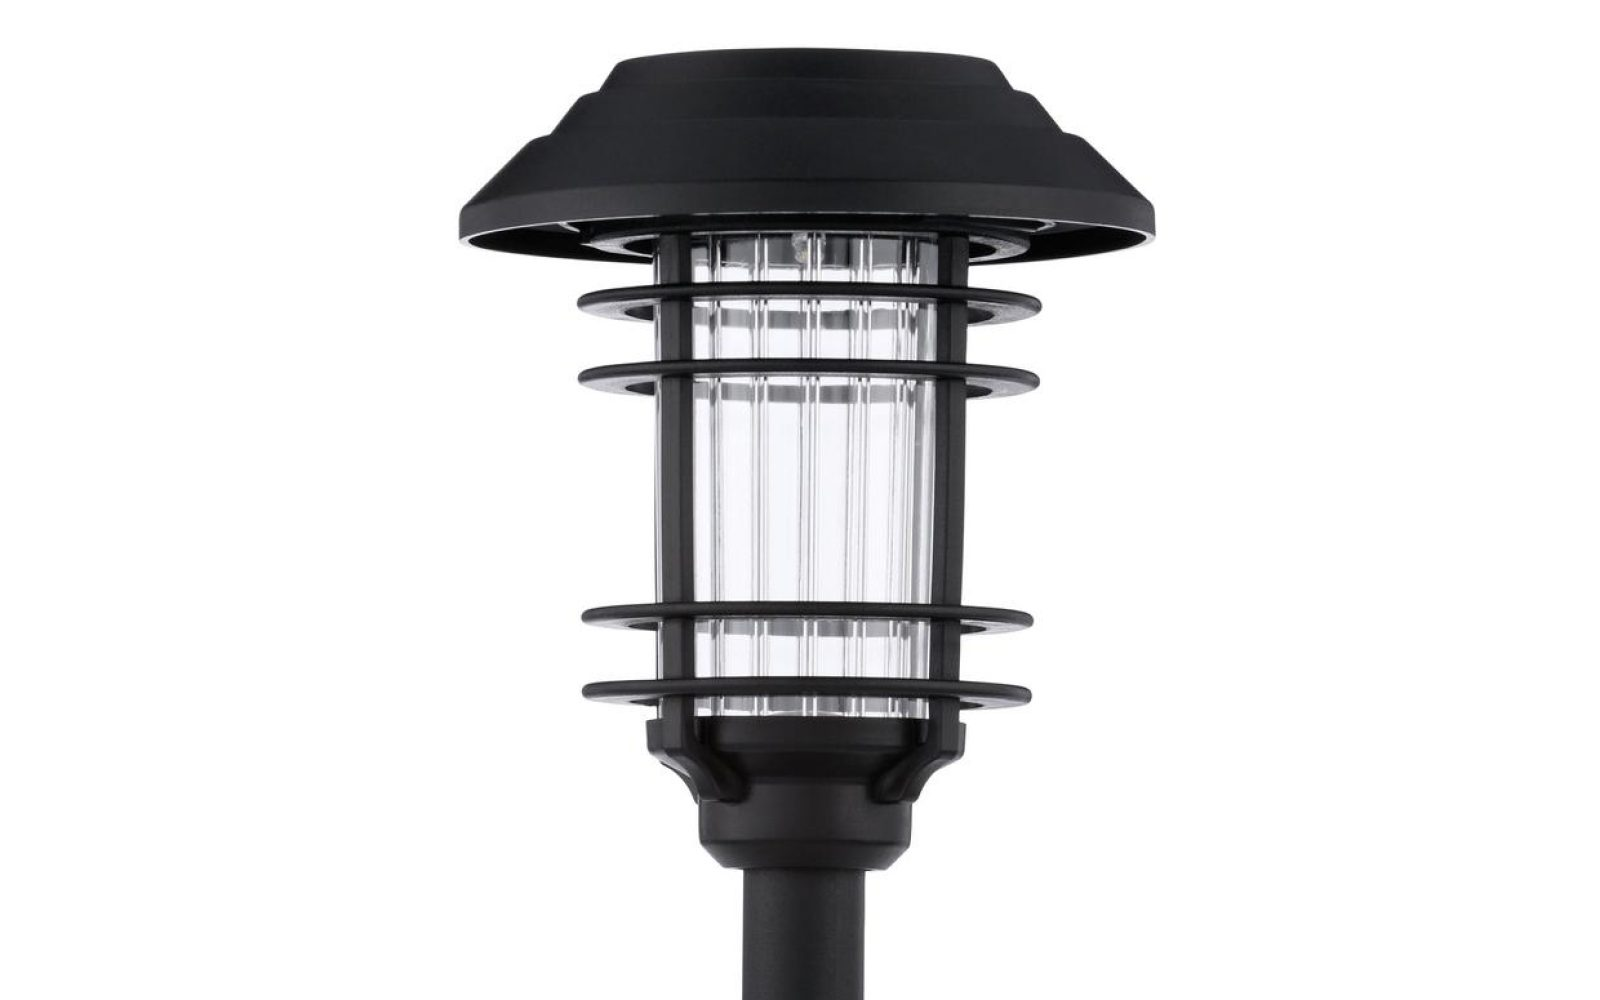 Green Deals: 6-pack Hampton Bay Solar LED Pathway Lights